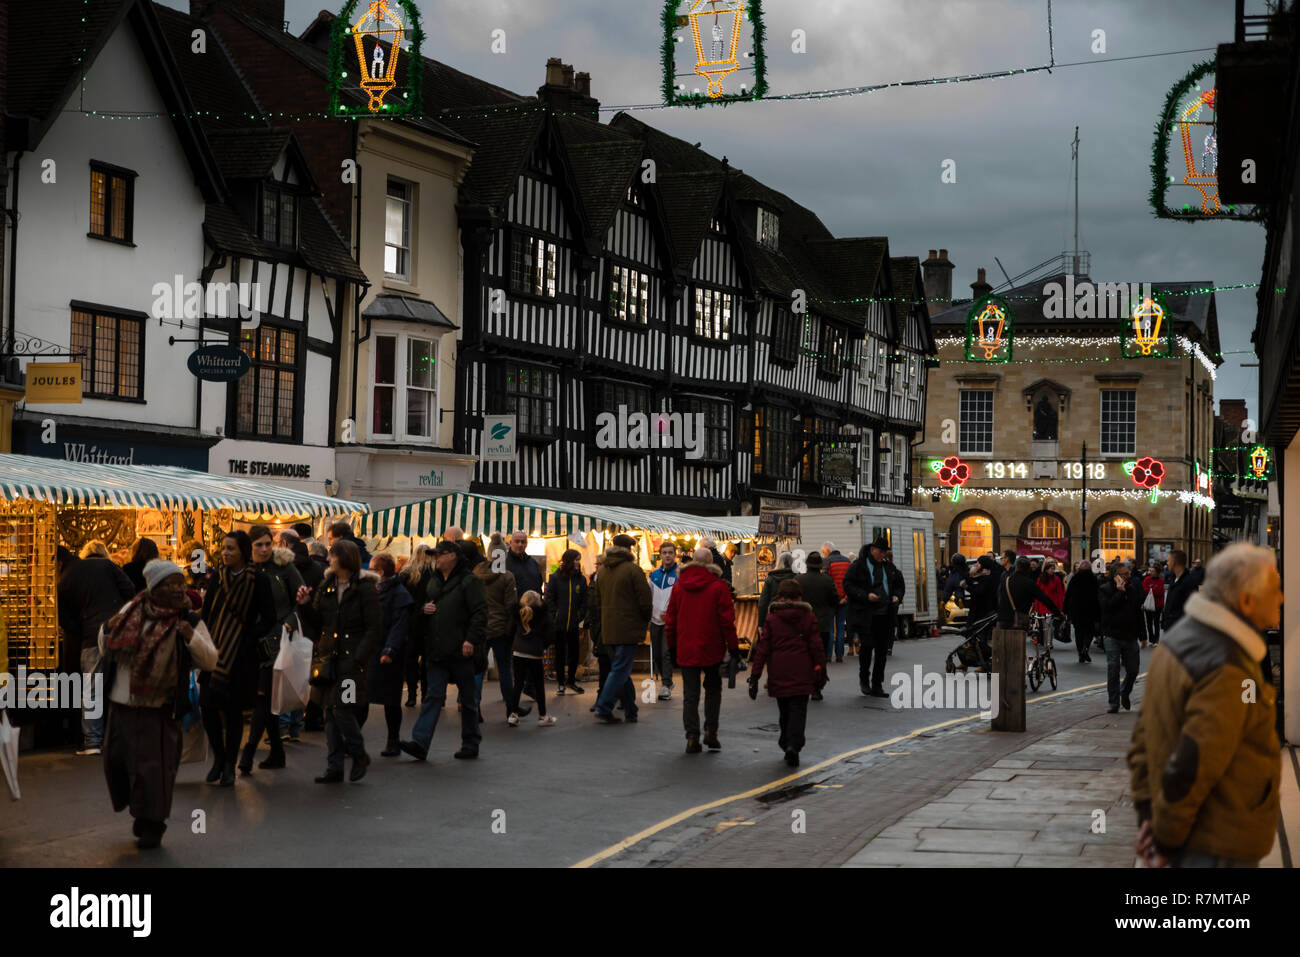 Victorian Christmas Market and lights in historic Union Street at night, Stratford upon Avon, England Stock Photo